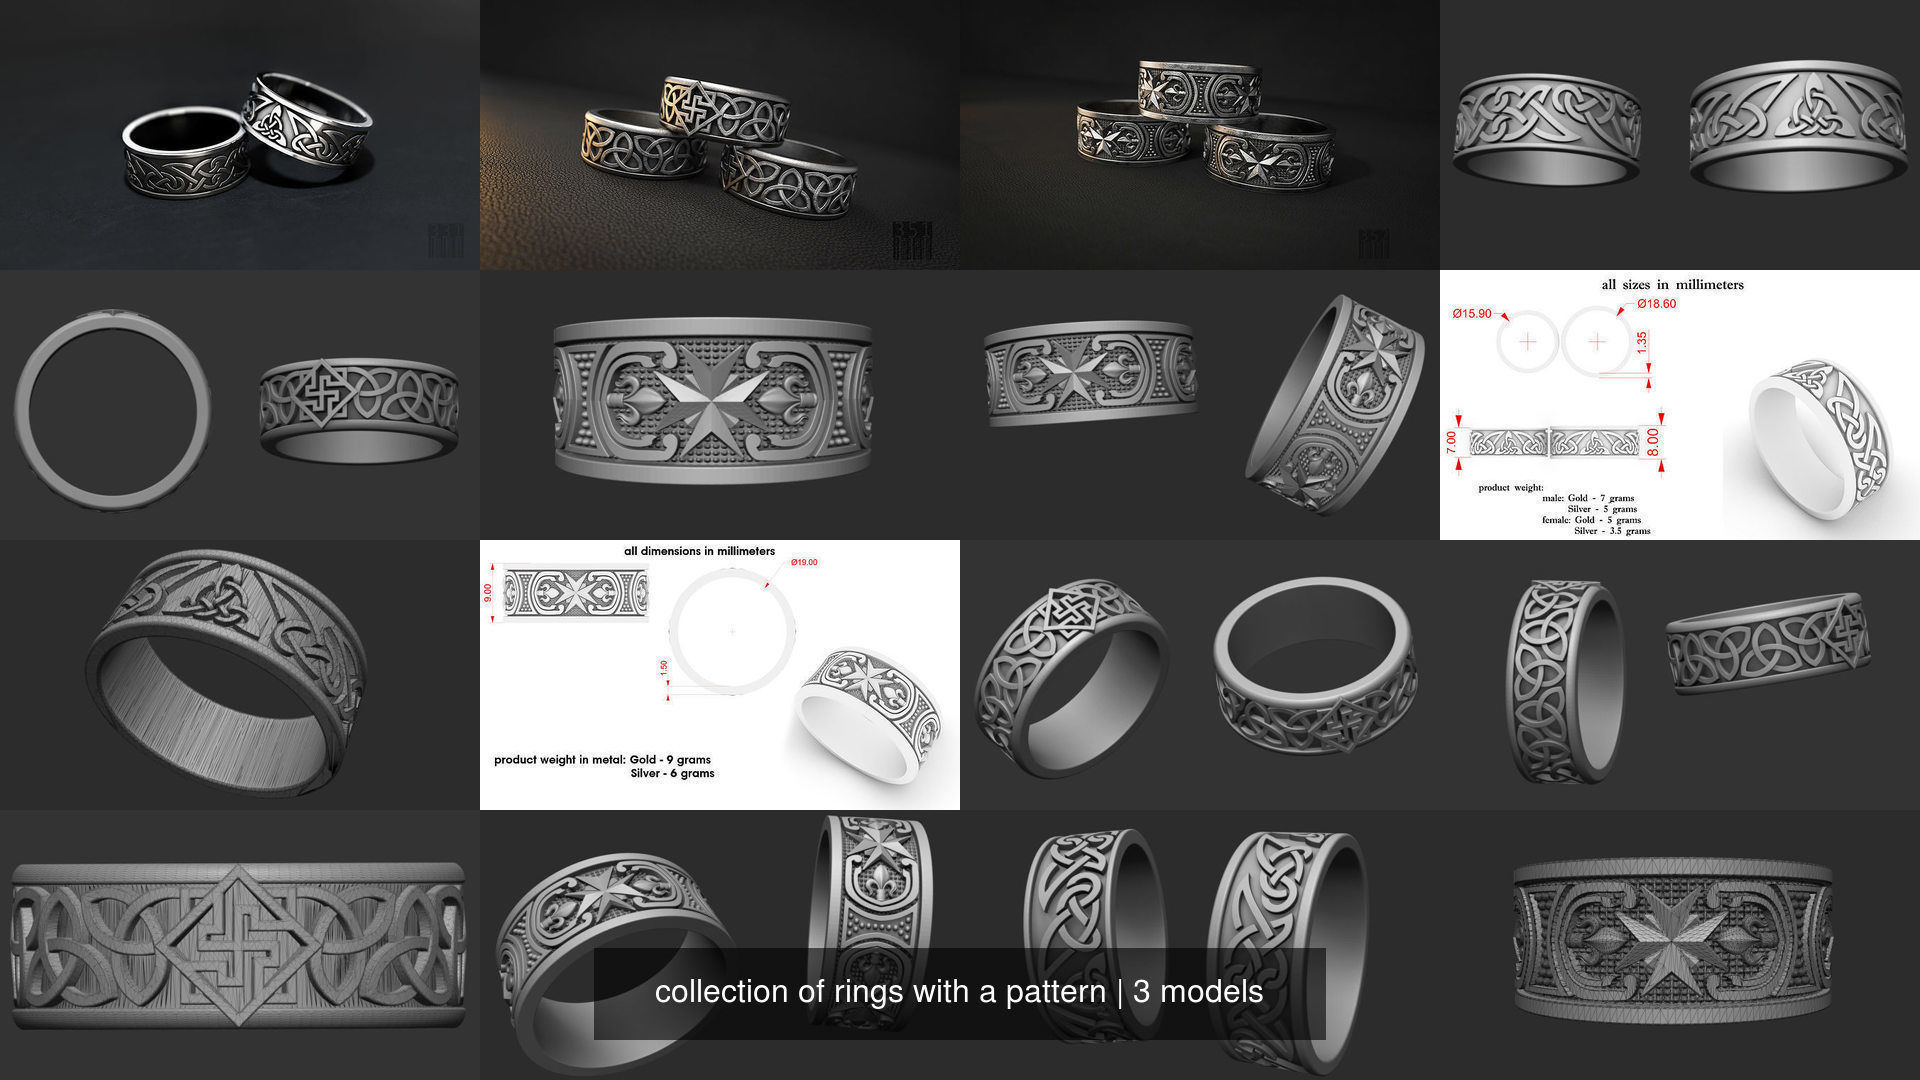 collection of rings with a pattern